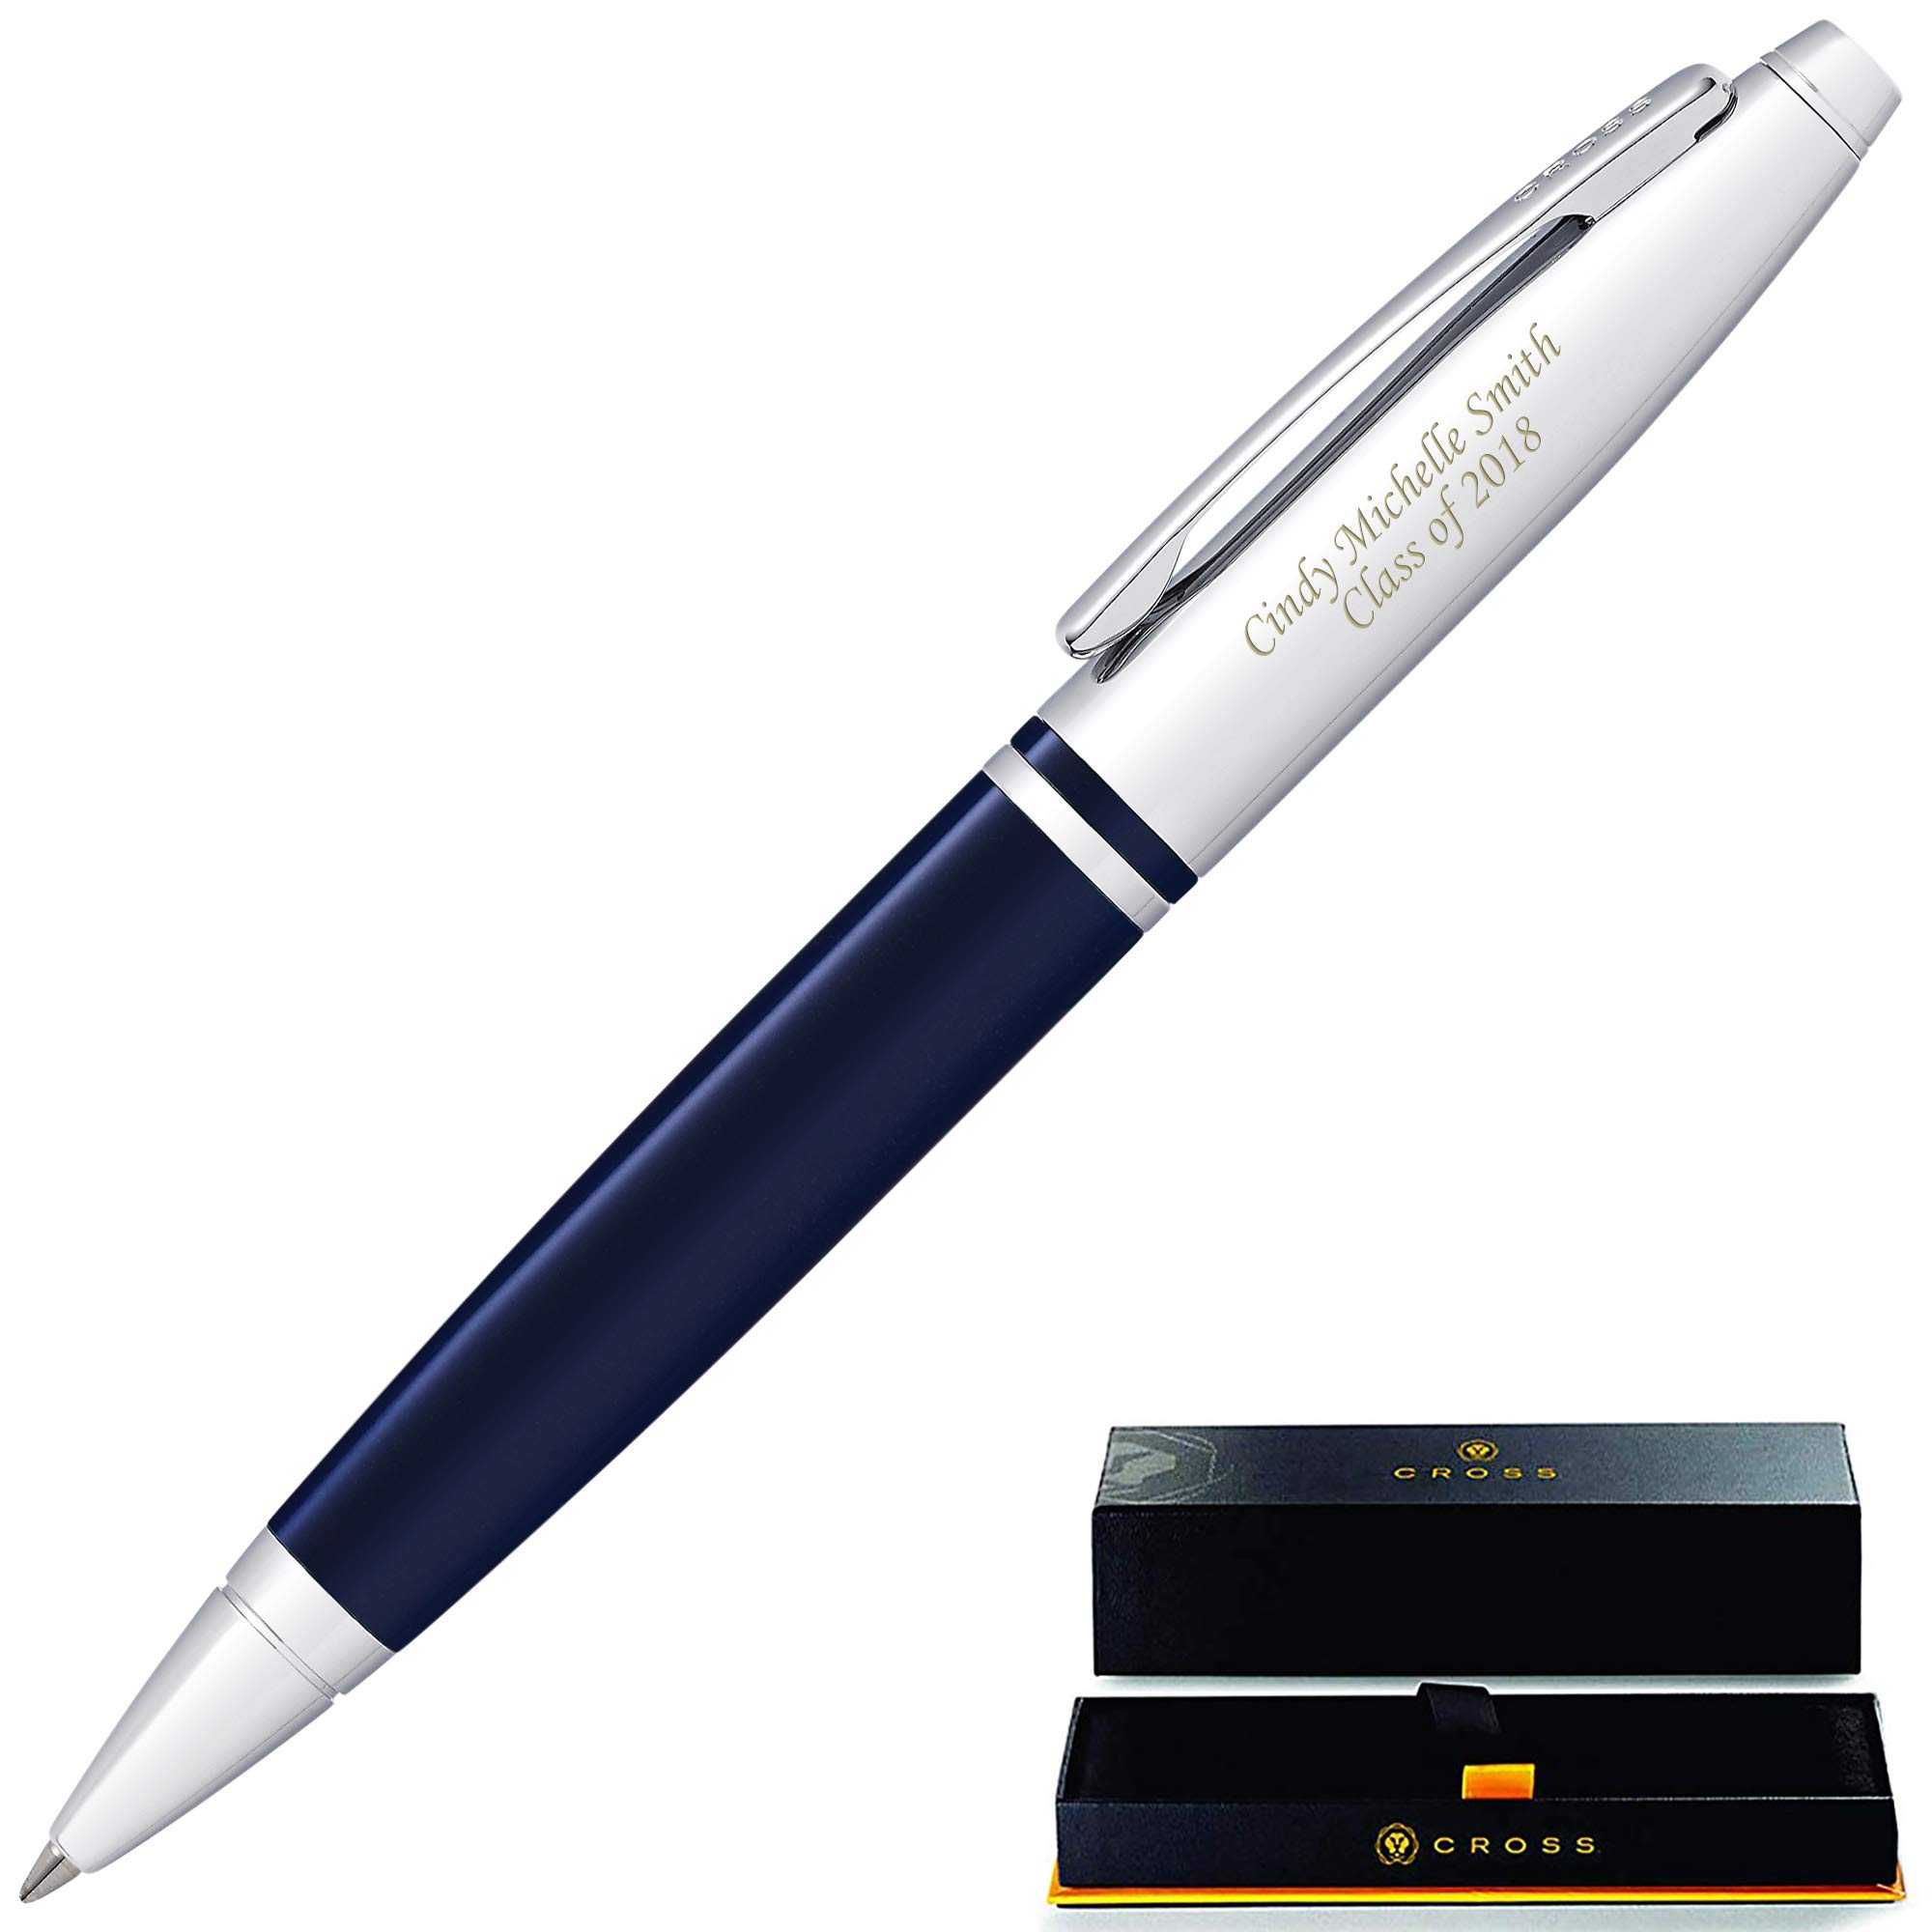 Engraved Cross Pen | Personalized Cross Calais Ballpoint Pen - Blue. 2 Lines of Engraving Included. Customized in 1 day. Graduation Pen, or Gift for Men or Women